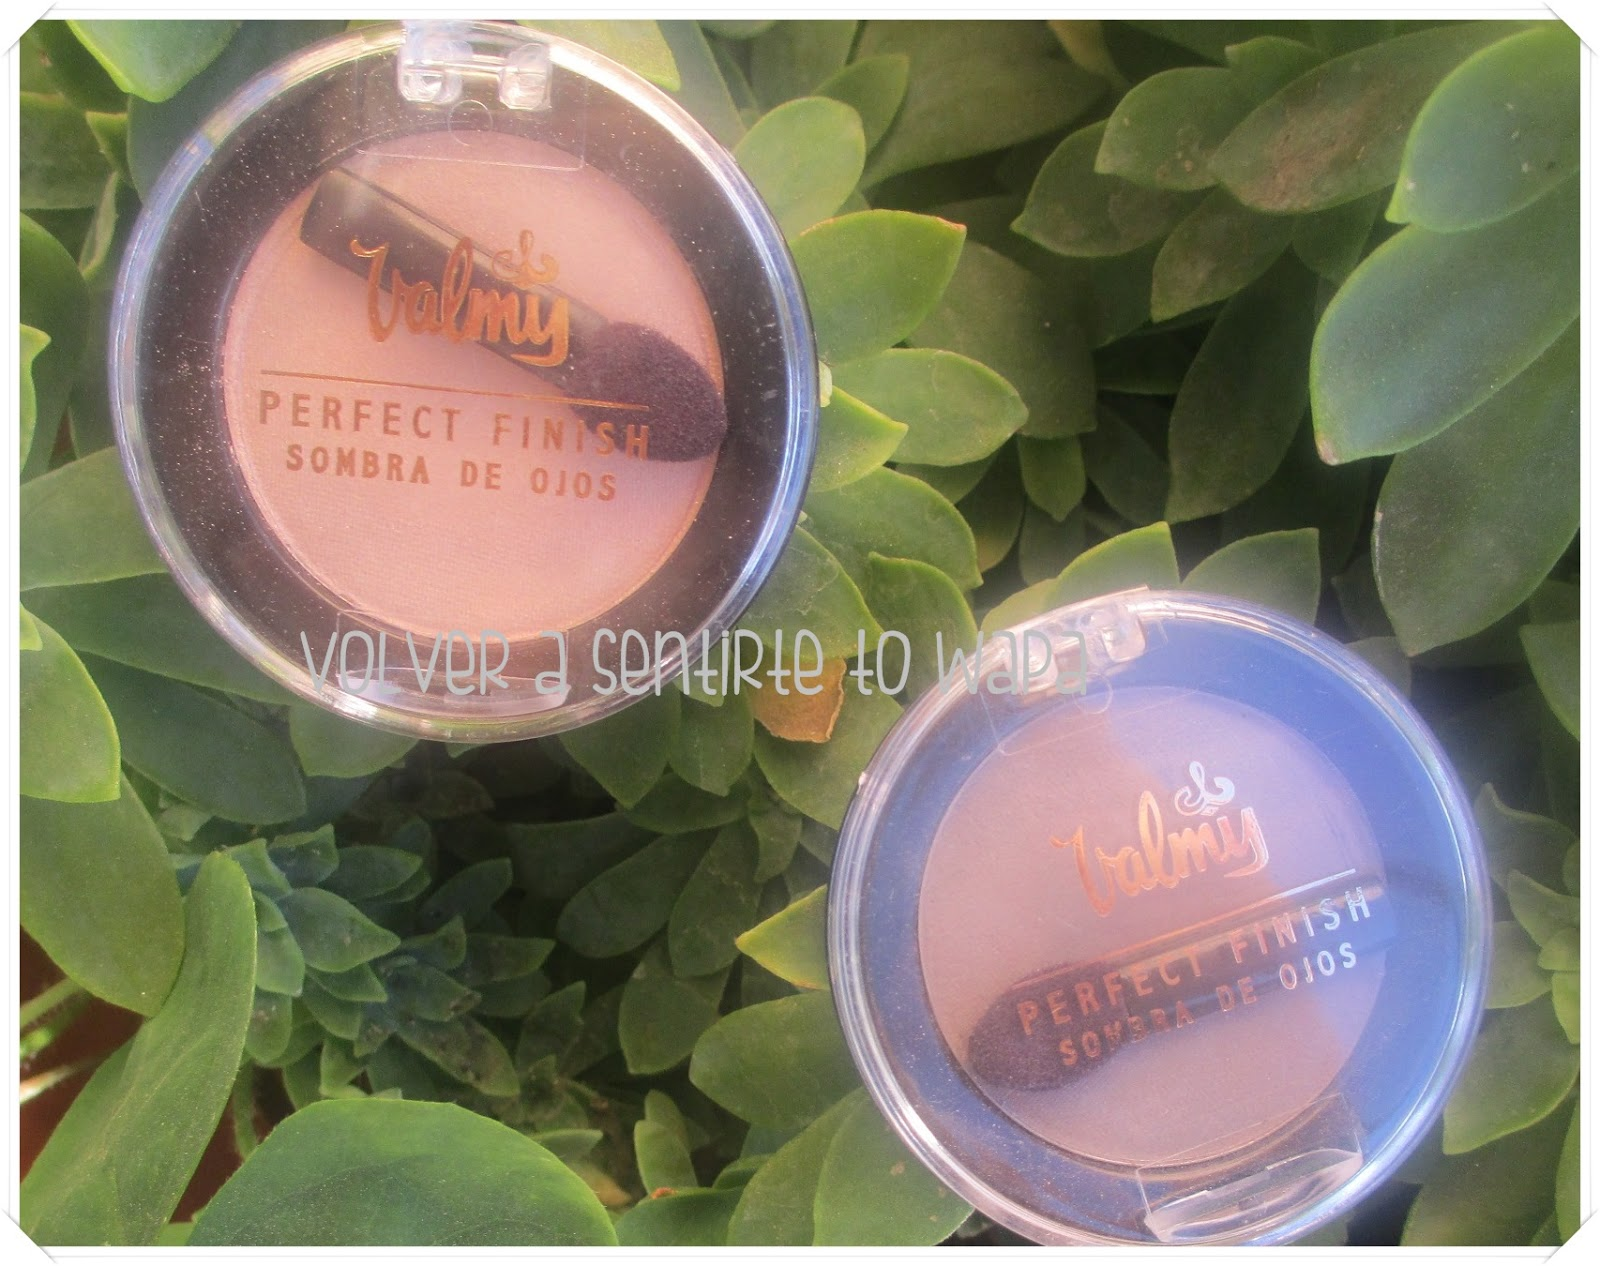 Sombras Perfect Finish de Valmy